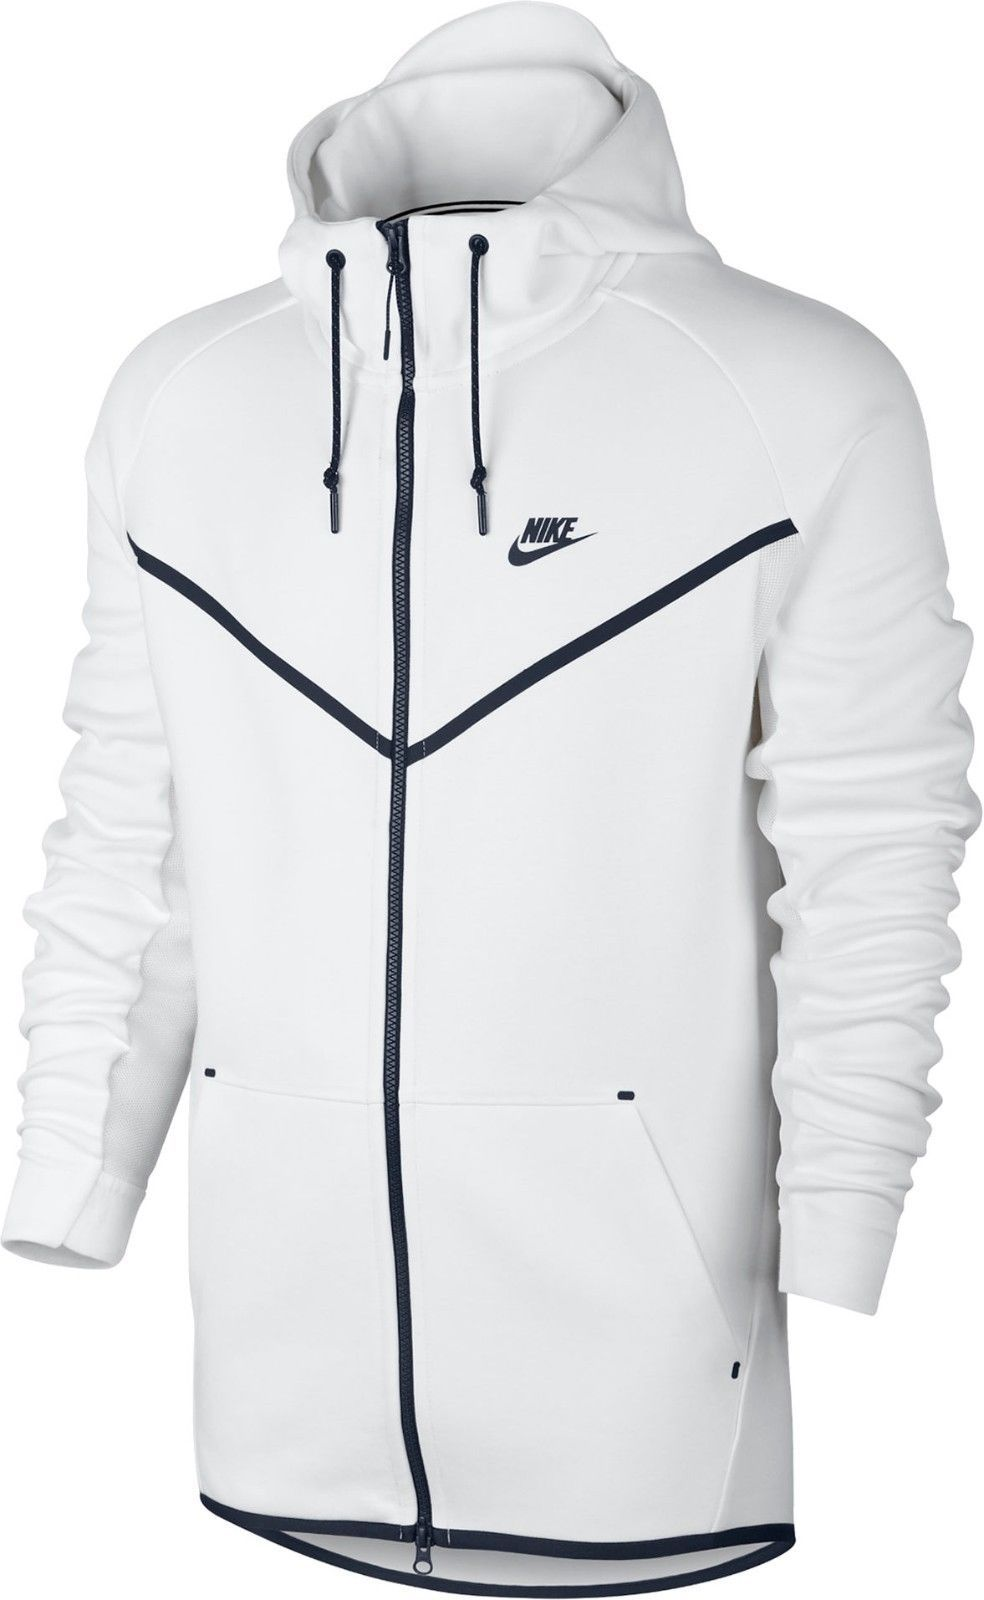 022f6df67a37 Nike Men s Tech Fleece Windrunner Hero Full Zip Jacket sz XL (727340-100)  White